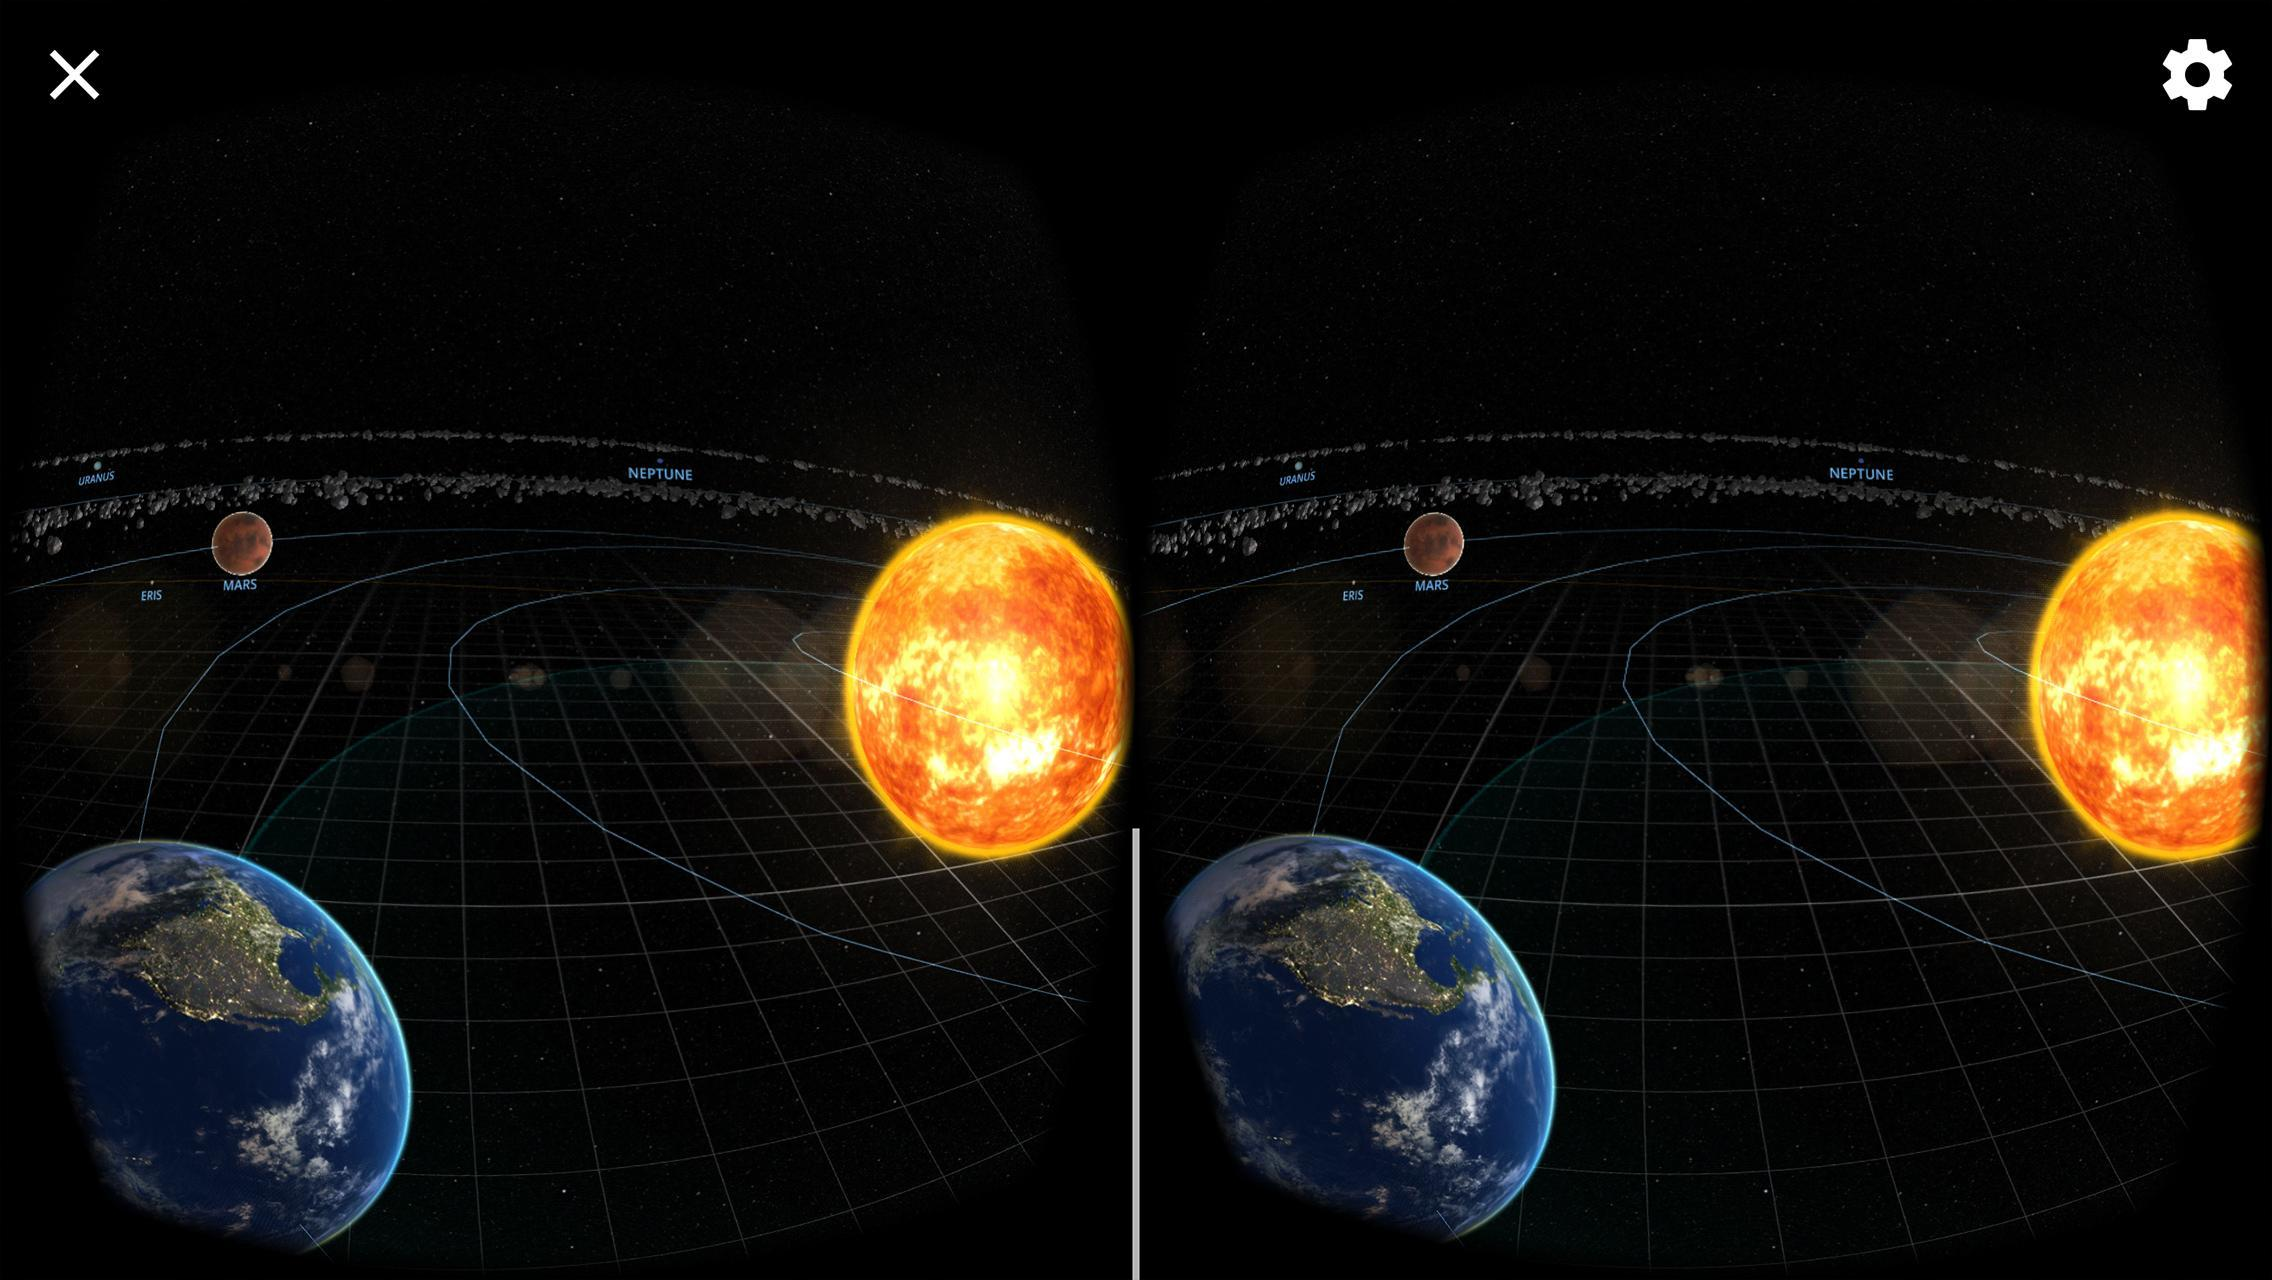 Solar System Scope VR for Android - APK Download